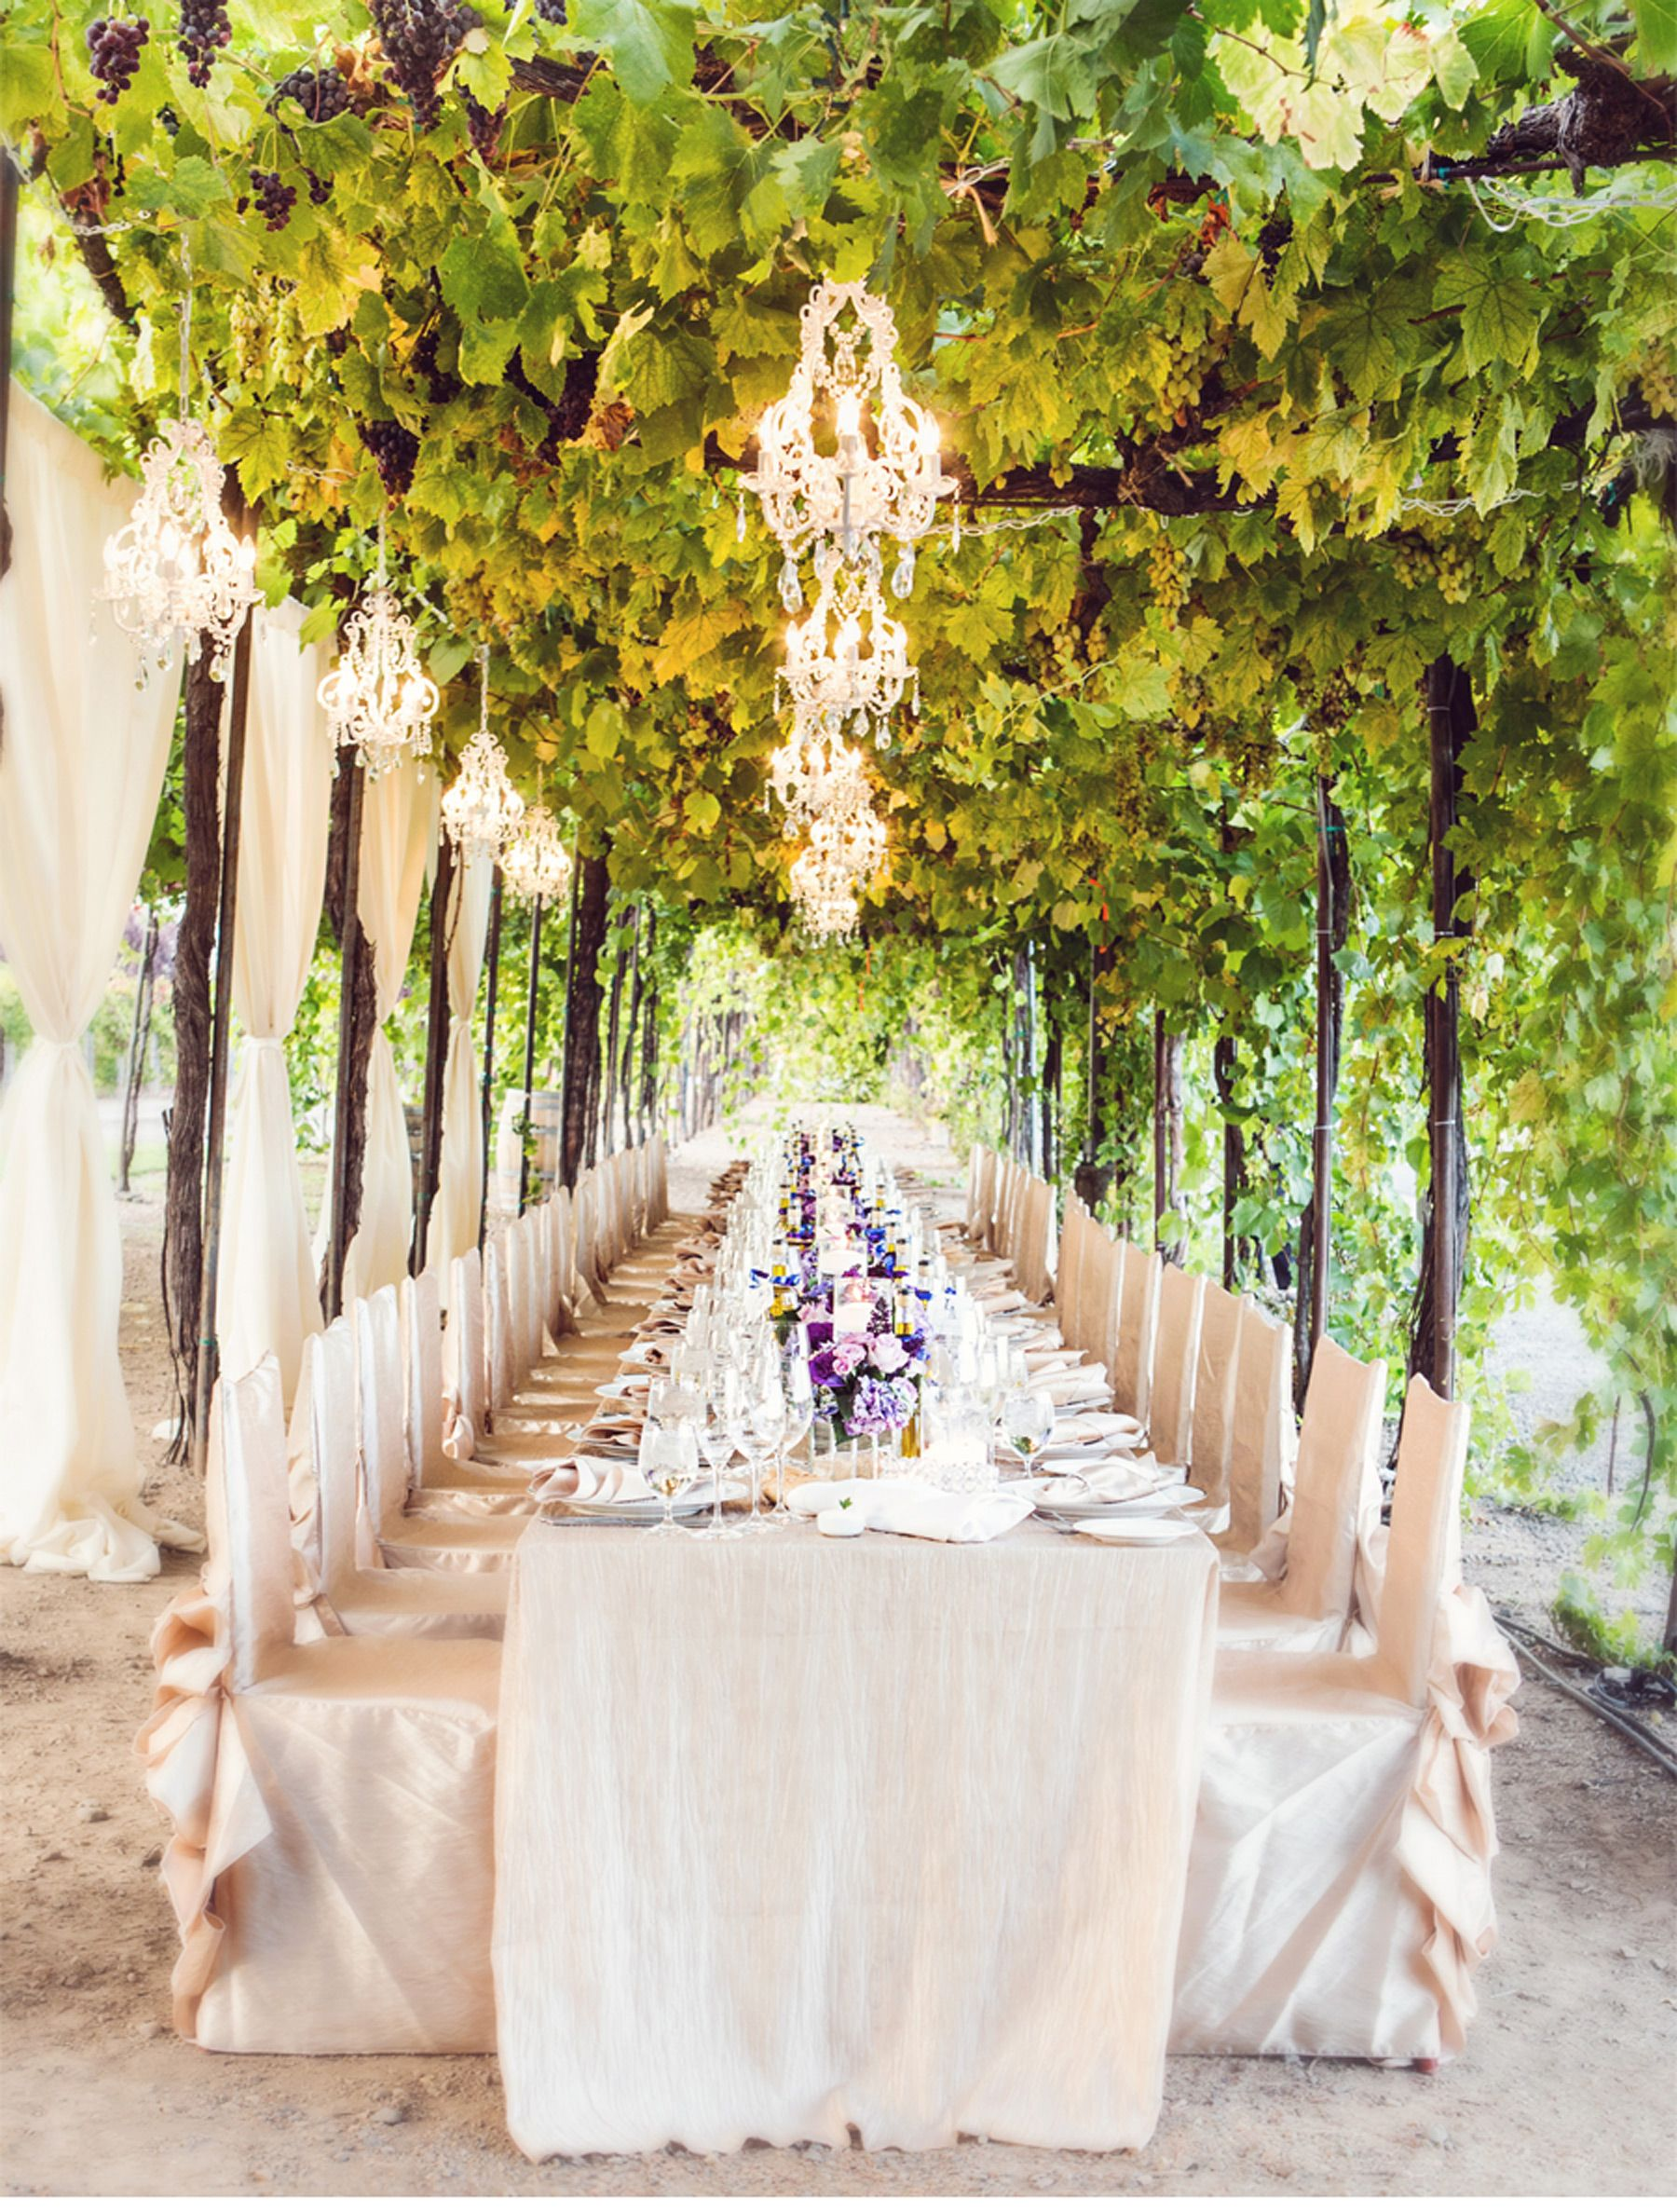 17 Creative Ideas For Planning A Romantic Winery Wedding Winery